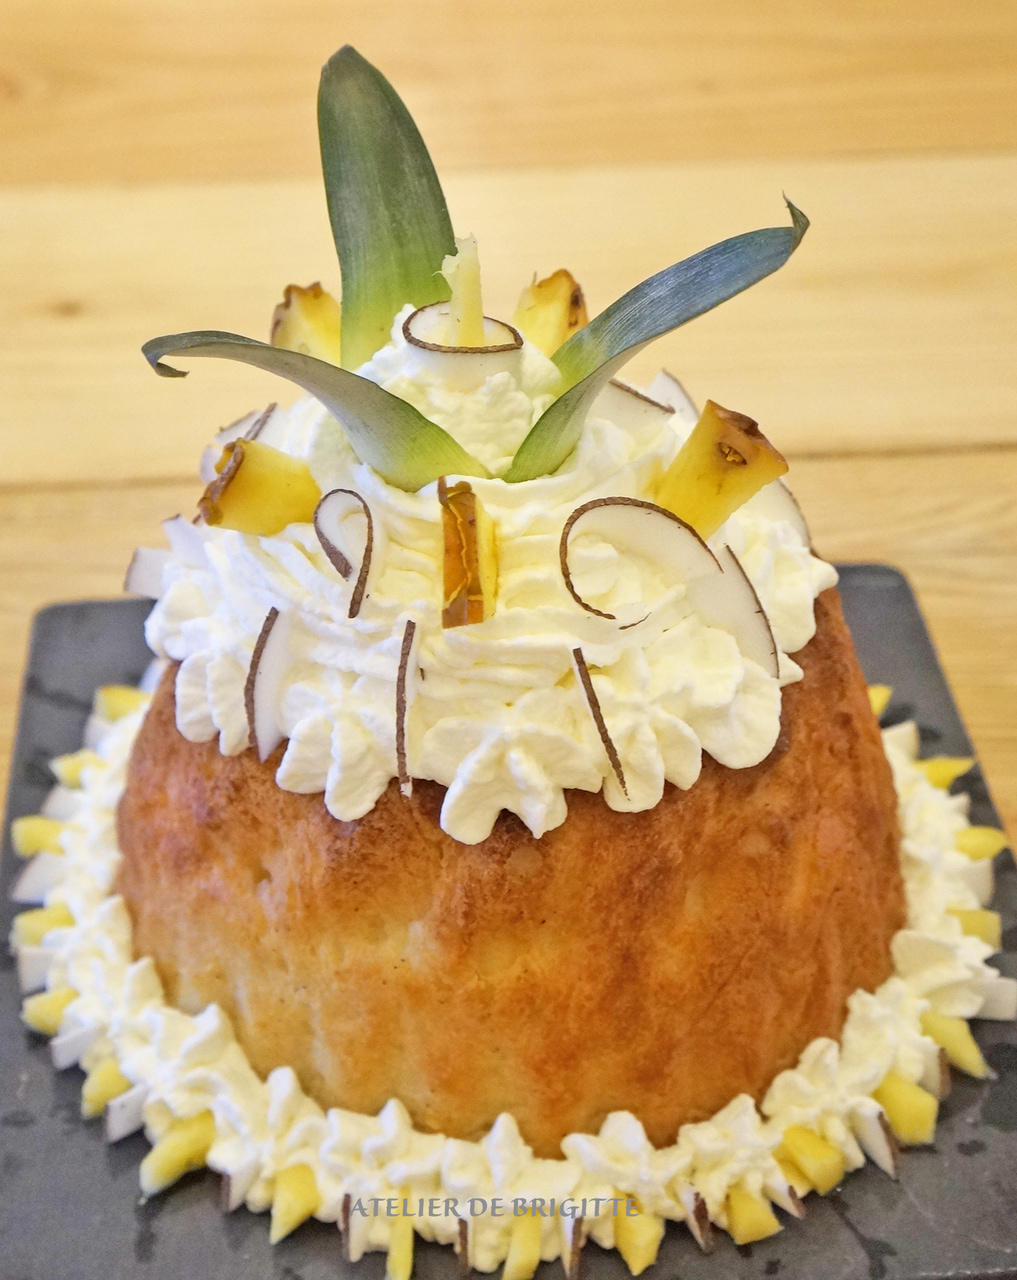 ananas, dessert, and french pastry image